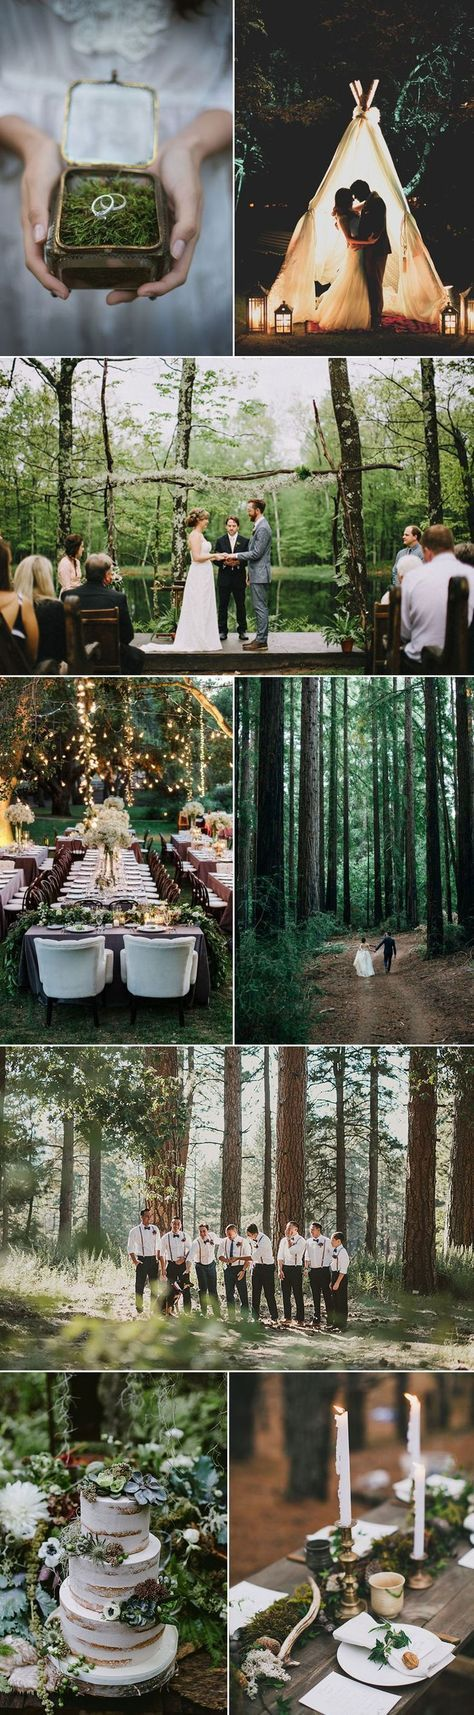 """Celebrate the splendors of the outdoors with a wildly chic Forest Wedding. The rustic charms of an outdoor setting are undeniable. If you envision saying """"I Do"""" with a backdrop of redwood trees and mountain lakes, a forest venue is perfect for you. Start here for inspiration:  https://www.bows-n-ties.com/mens-fashion-tips/wedding-inspiration-for-forest-weddings/"""